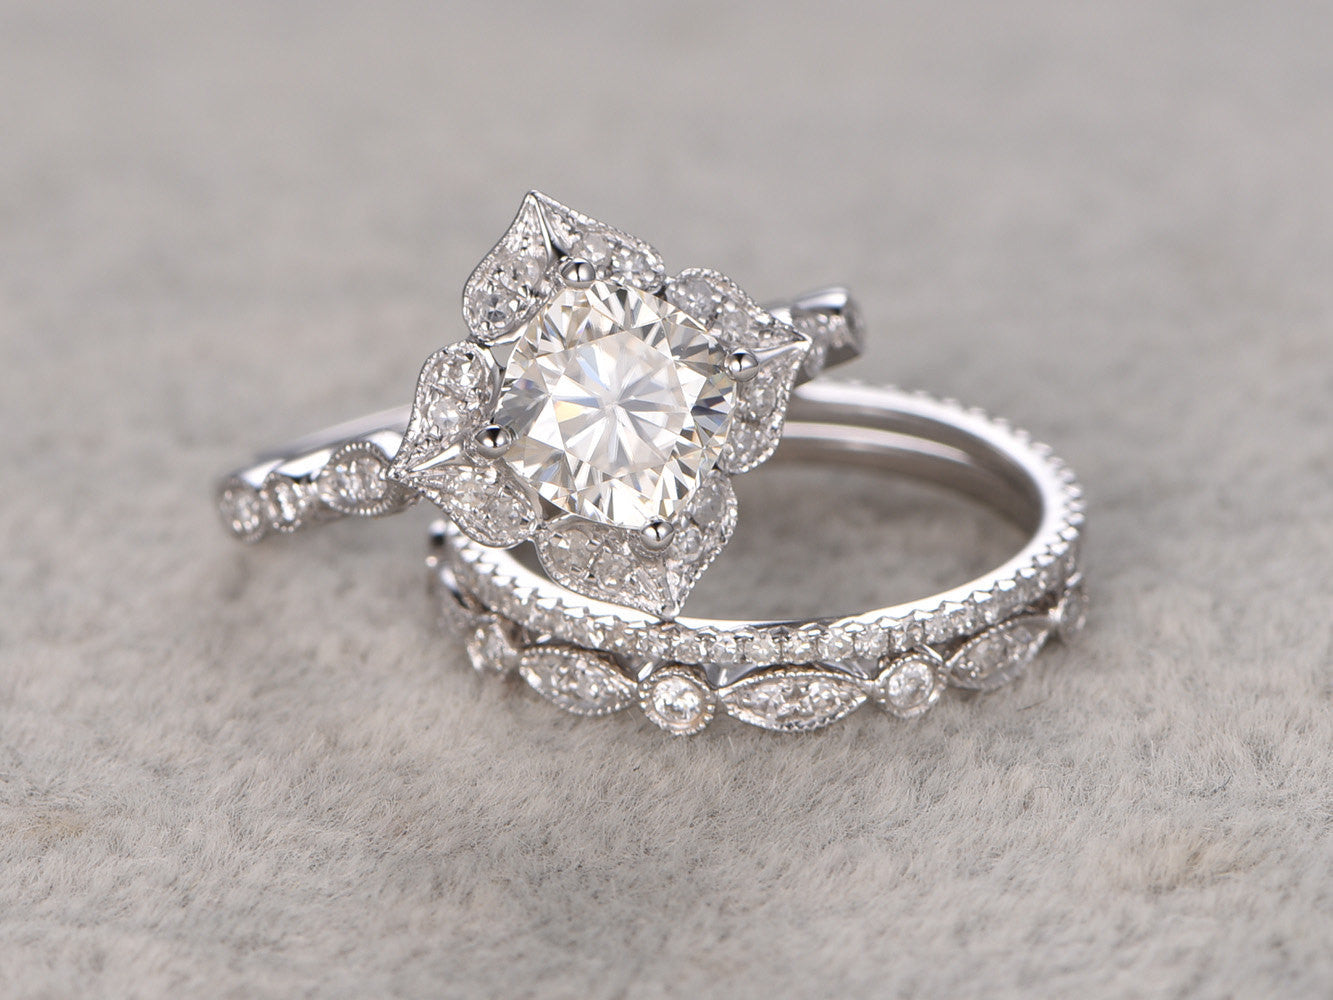 3pc 6mm Cushion brilliant Moissanite Engagement ring set,14k White gold,Diamond wedding band,Promise Bridal Ring,Halo floral,Anniversary